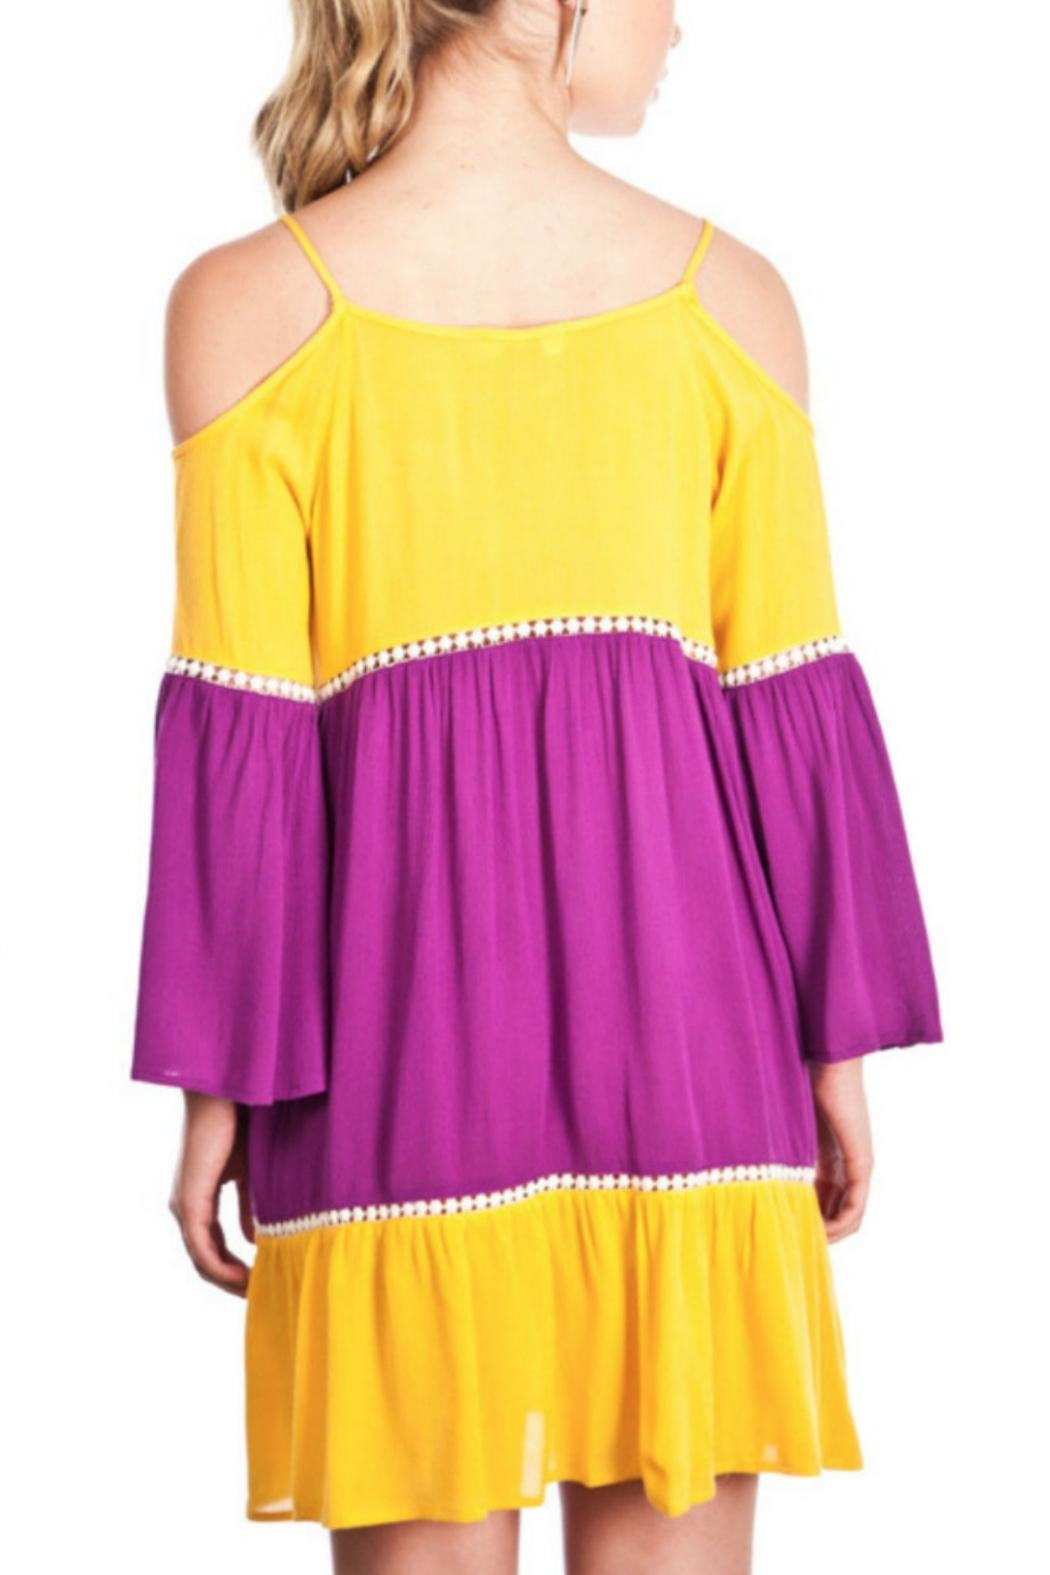 Umgee USA Cold-Shoulder Colorblock Dress - Front Full Image